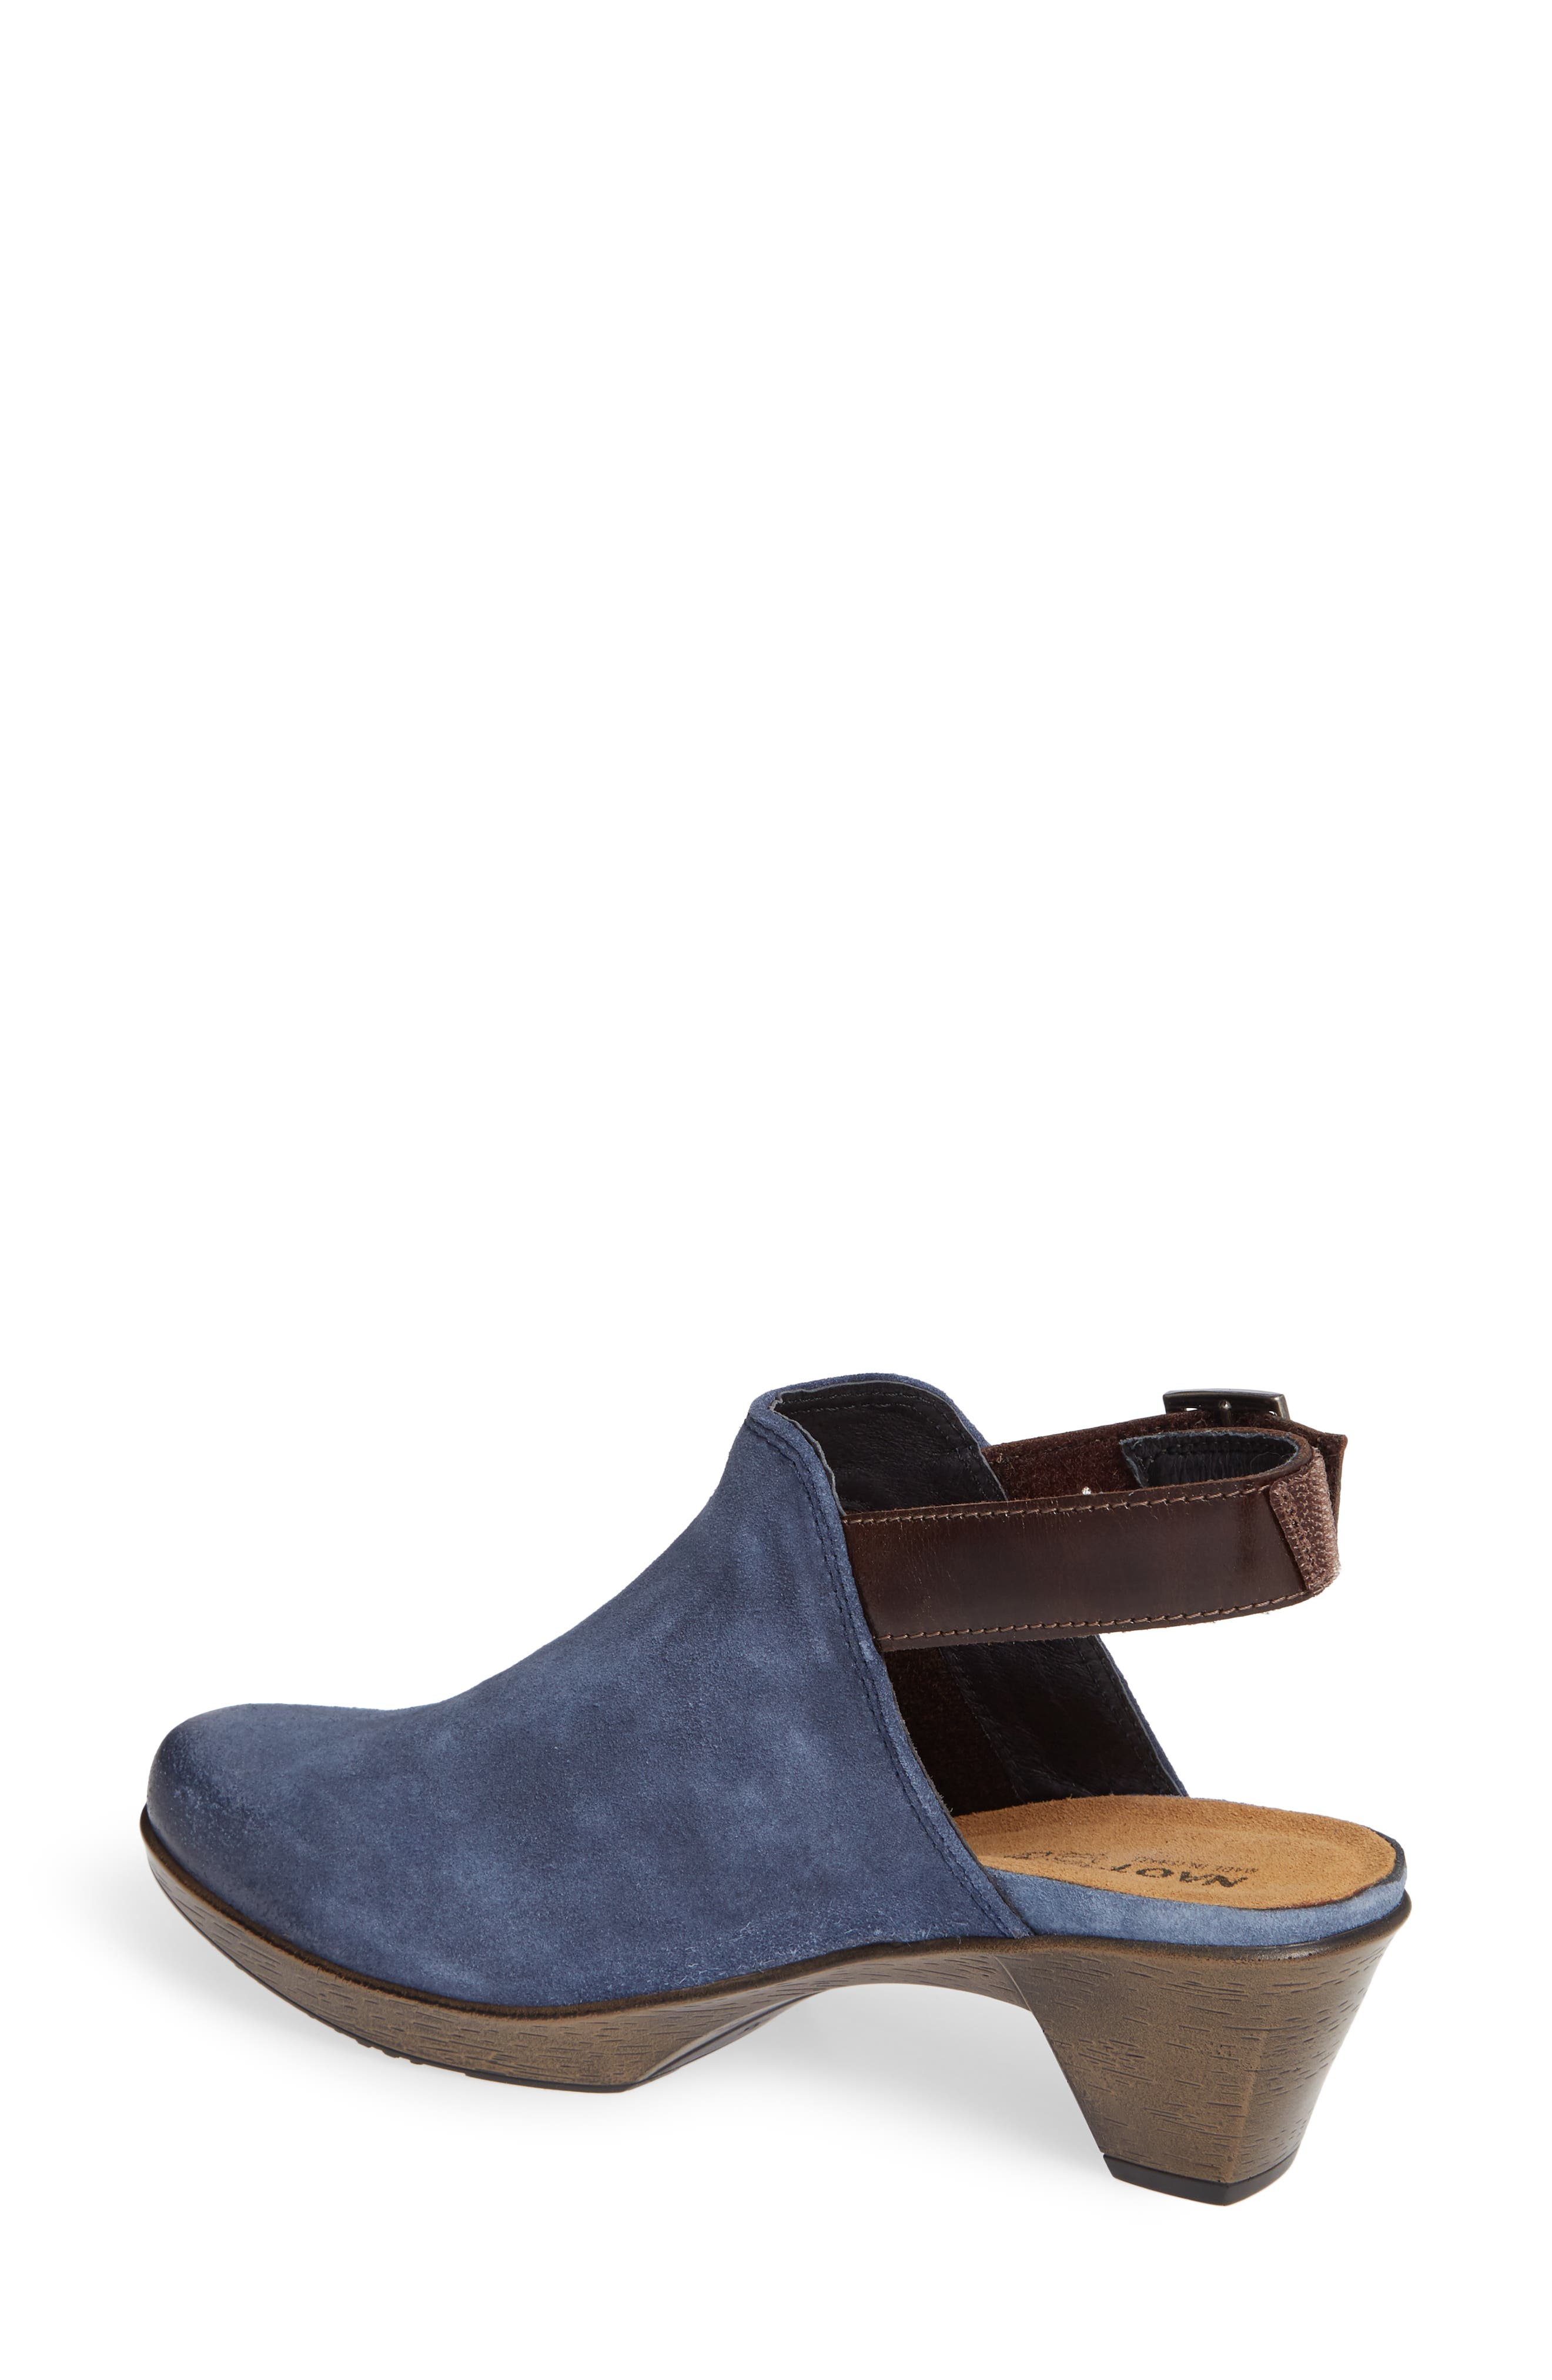 Upgrade Bootie,                             Alternate thumbnail 2, color,                             BLUE/ WALNUT SUEDE/ LEATHER